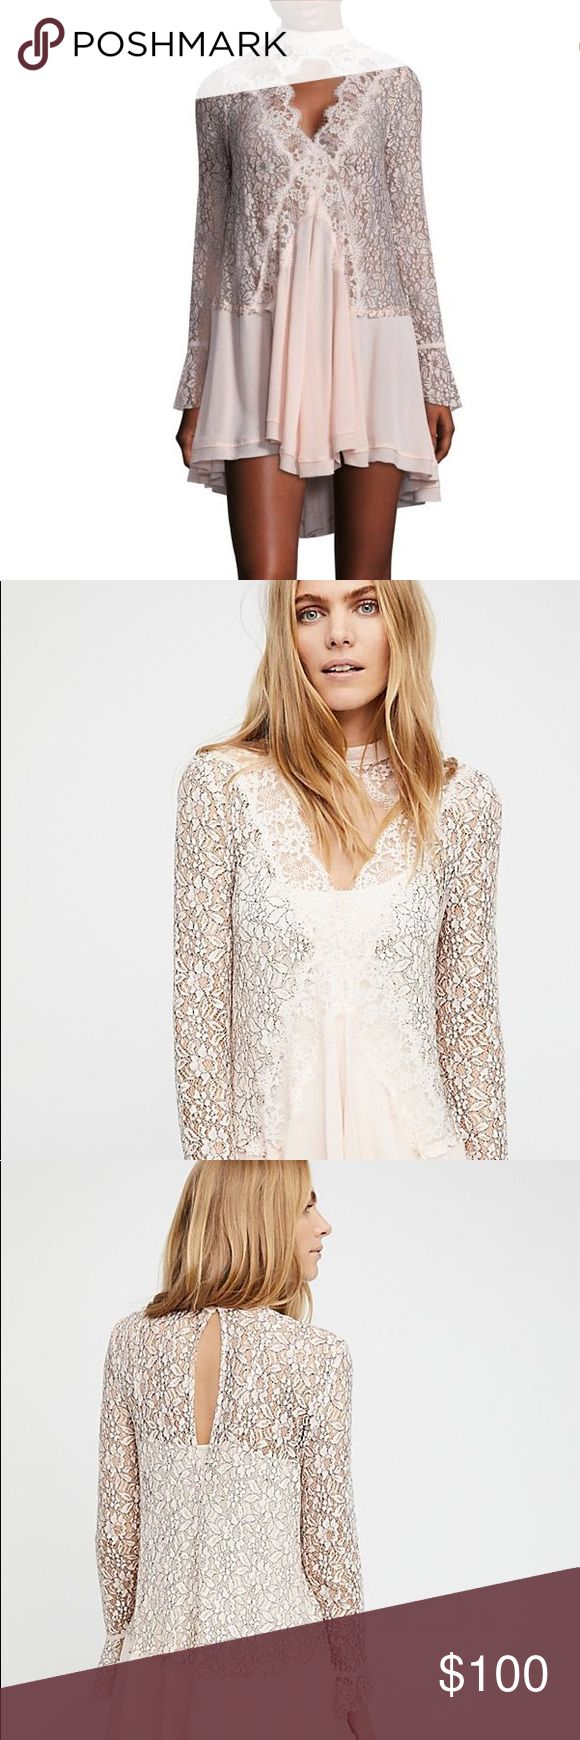 Free People Tell Tale Lace Hem Dress Turn heads with this sexy lace hem dress Swingy silhouette Color Pearl  Mock neckline Keyhole front Long lace sleeves Sheer lace top Fluted bell detail Relaxed fit Crinkly crepe skirt Button closure back Rayon/polyester/nylon machine wash Free People Dresses Mini